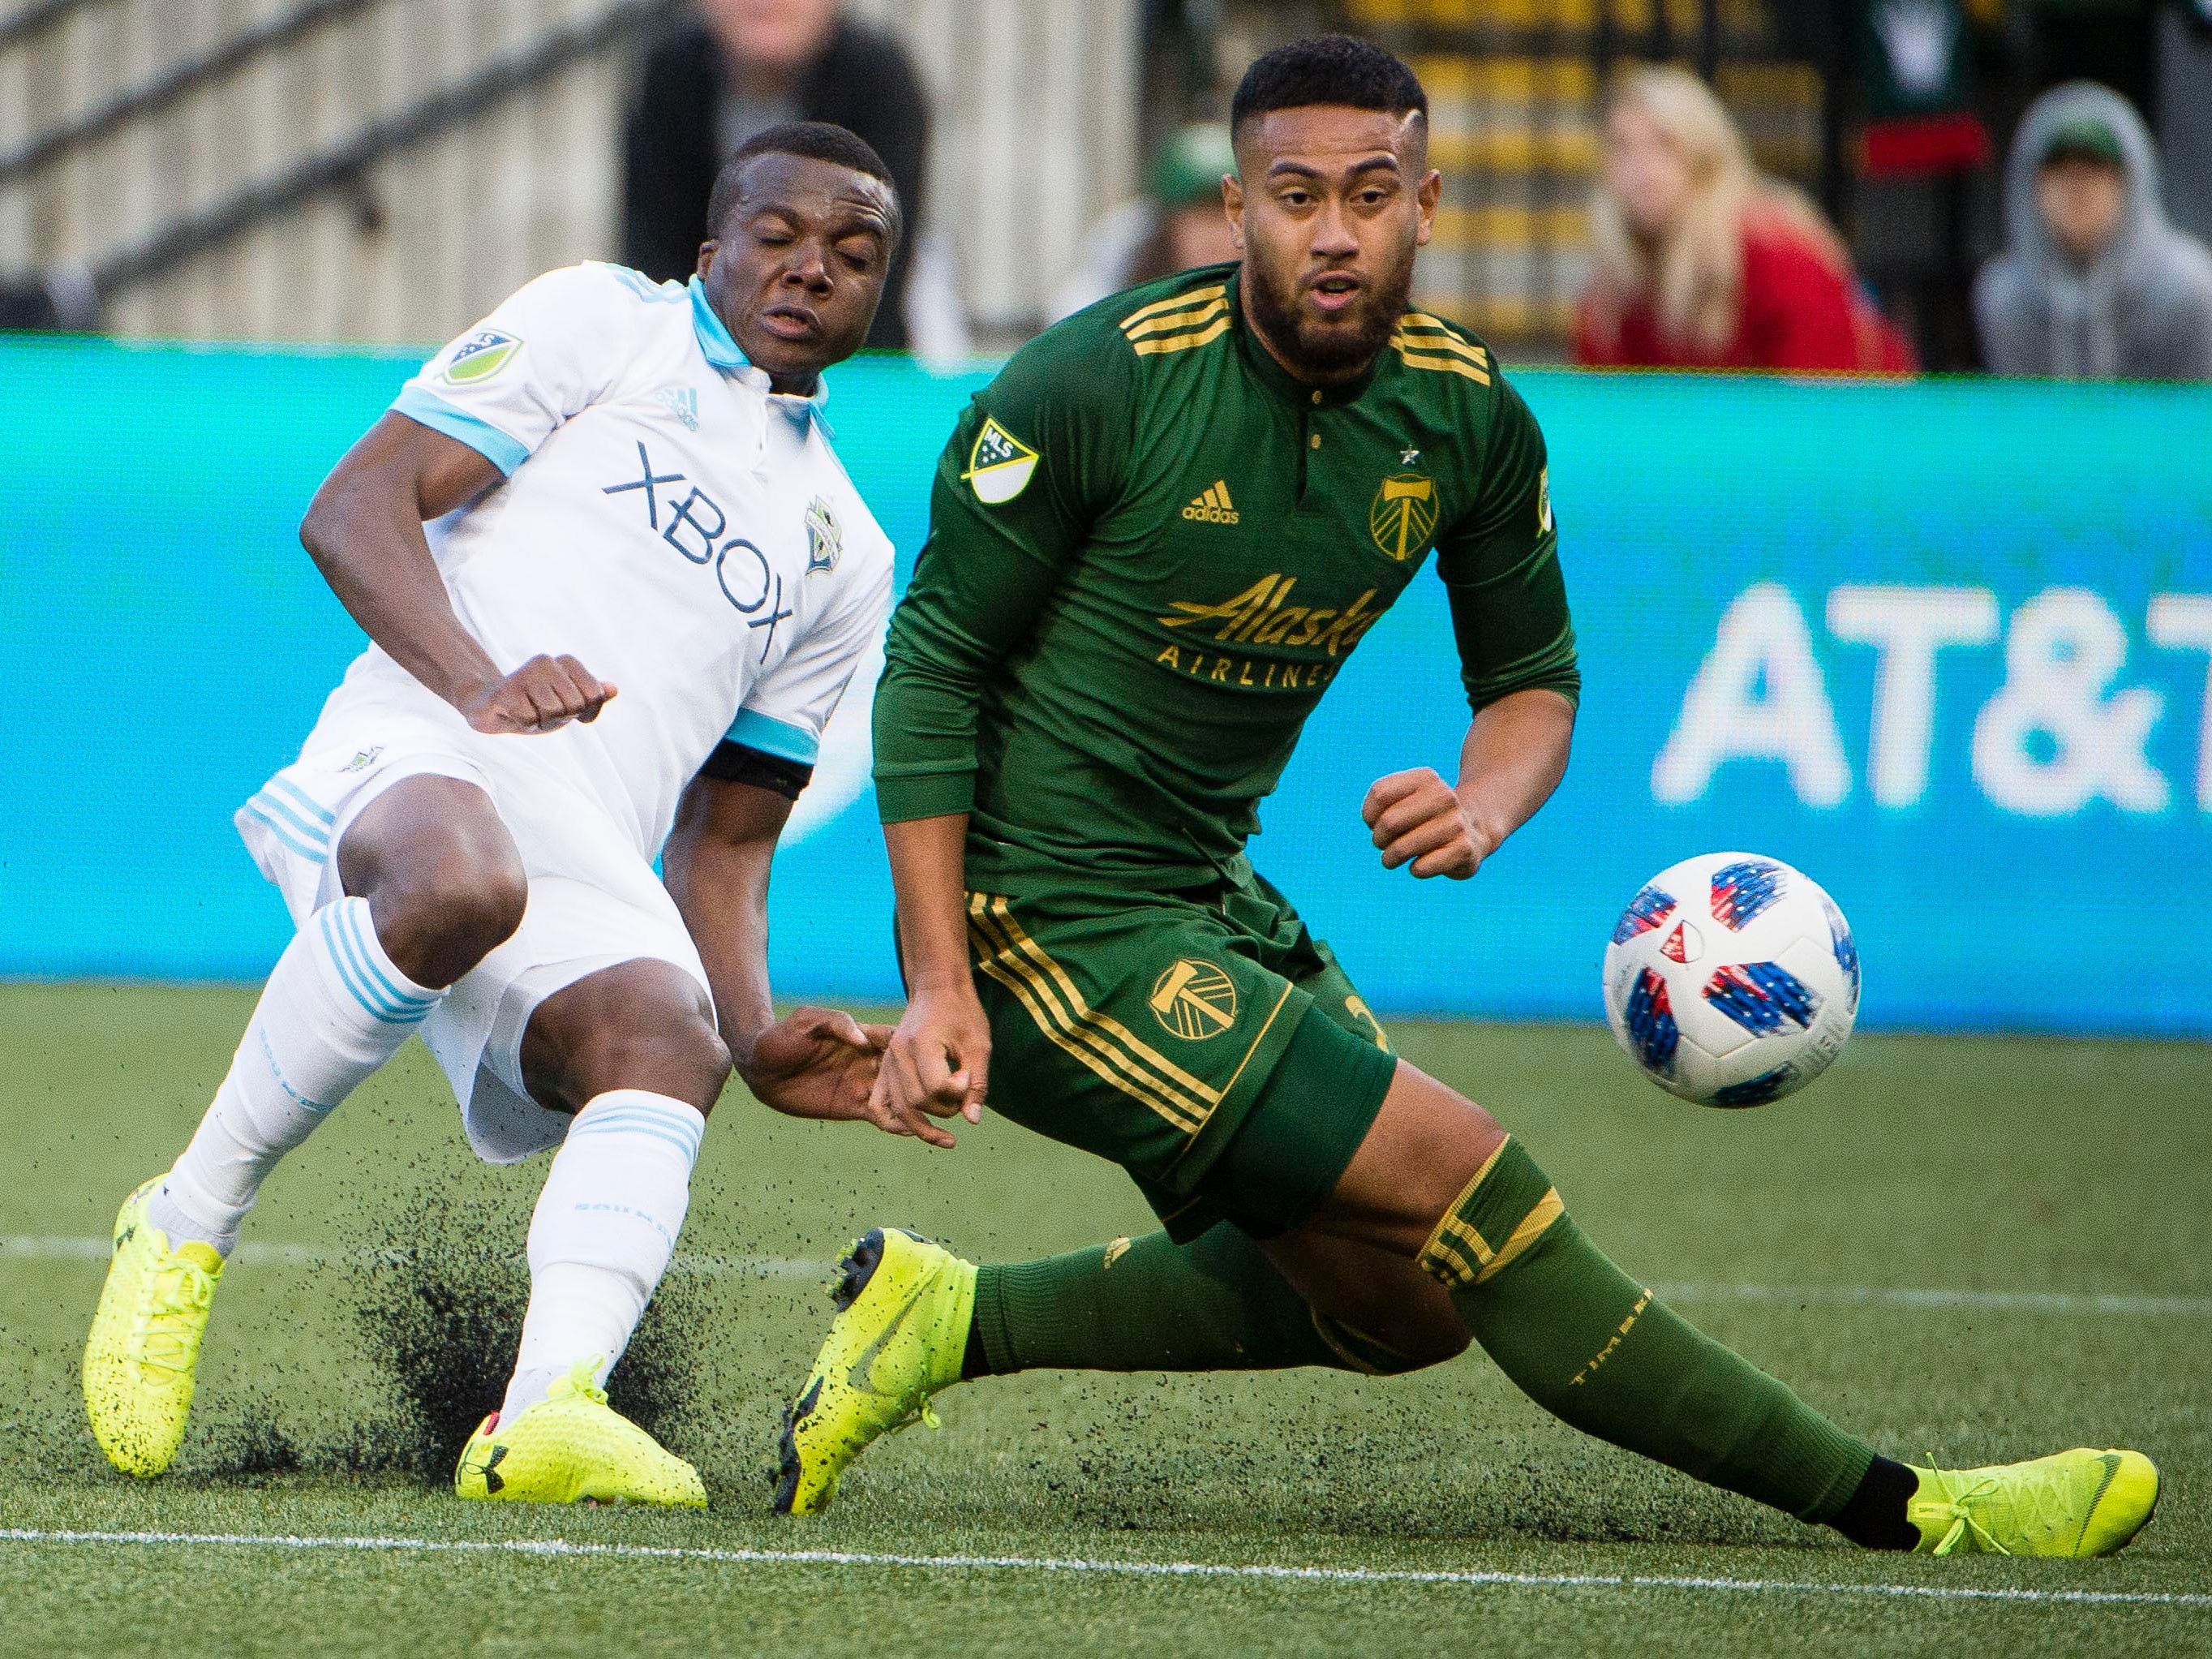 Portland Timbers defender Bill Tuiloma blocks a shot on goal by Seattle Sounders defender Nouhou Tolo during the first half at Providence Park. Portland won the game, 2-1.